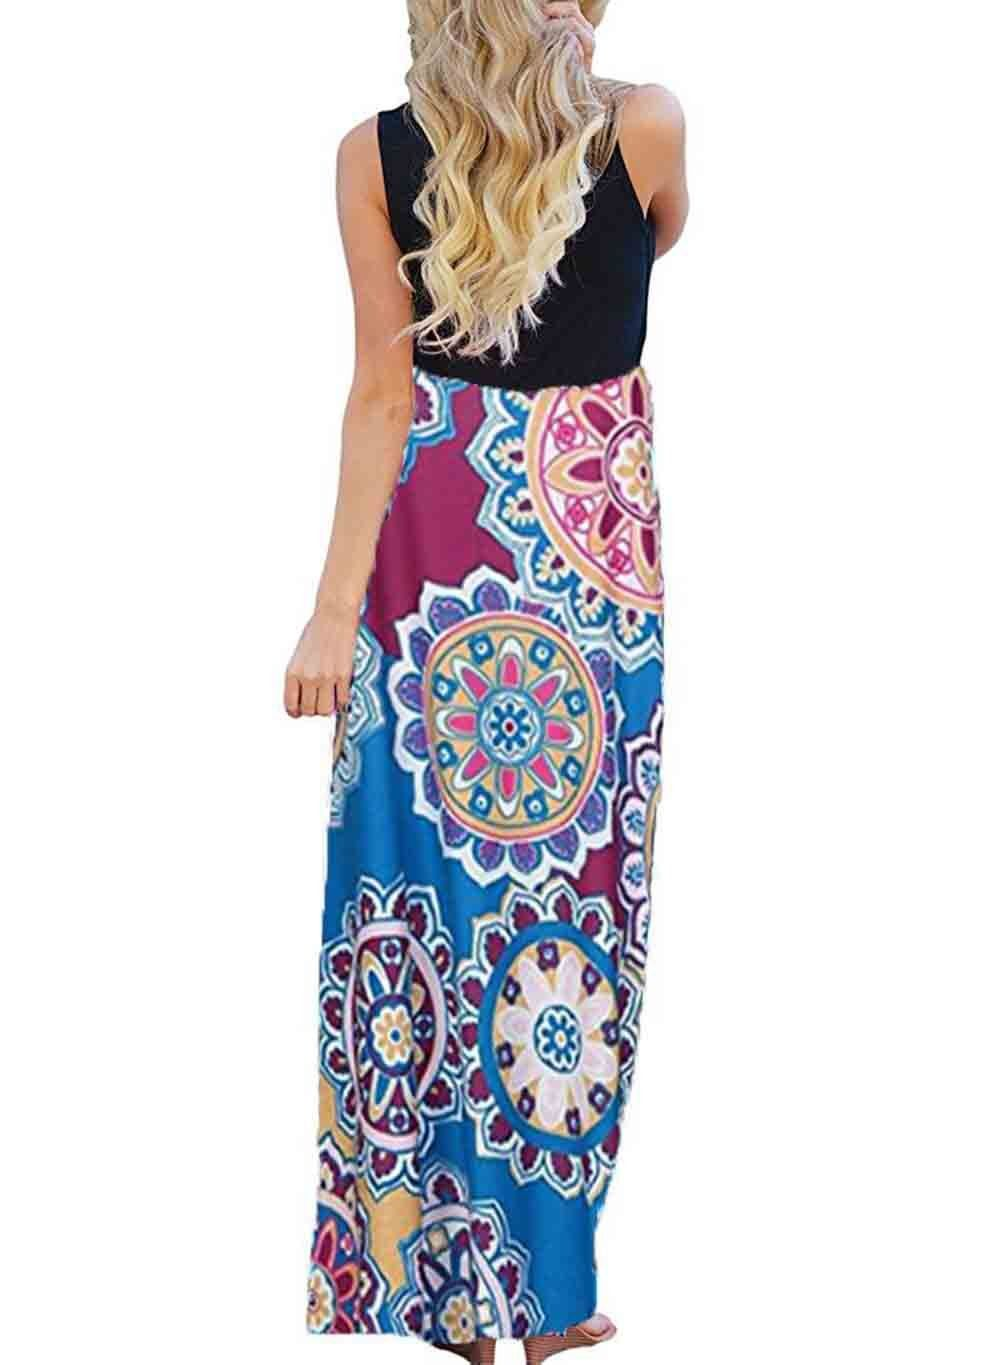 Hot pink maternity maxi dress  Maternity Dresses  Tooffee Womens Summer Ethnic Style Floral Print